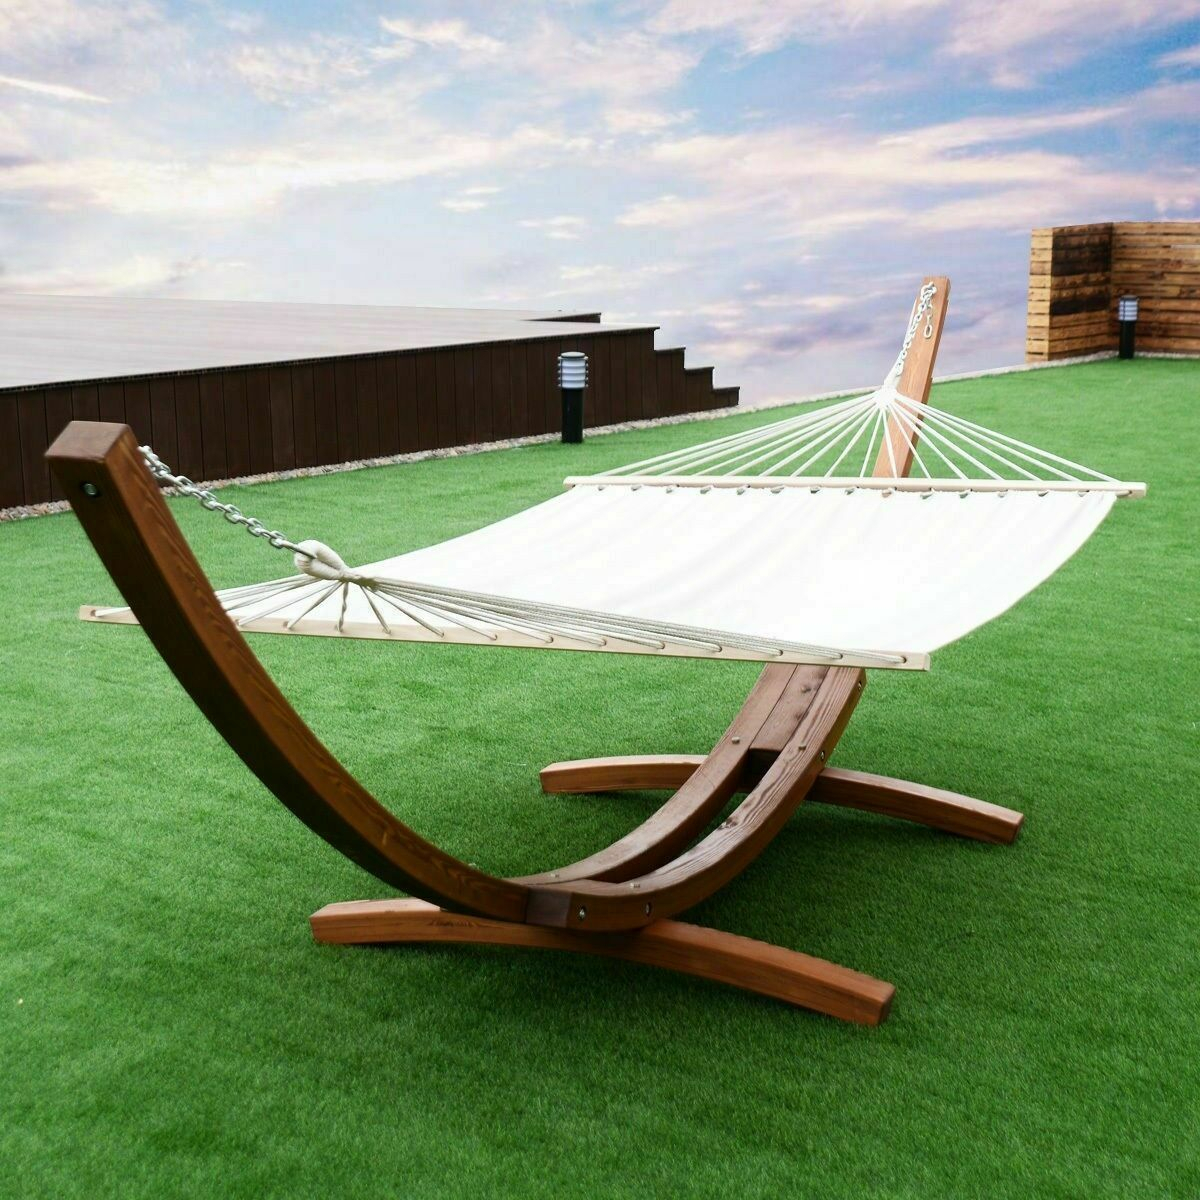 2 Person Hanging Quilted Hammock With Stand Wooden Arc Swing Chair Outdoor Set In 2 Person Black Wood Outdoor Swings (View 25 of 25)